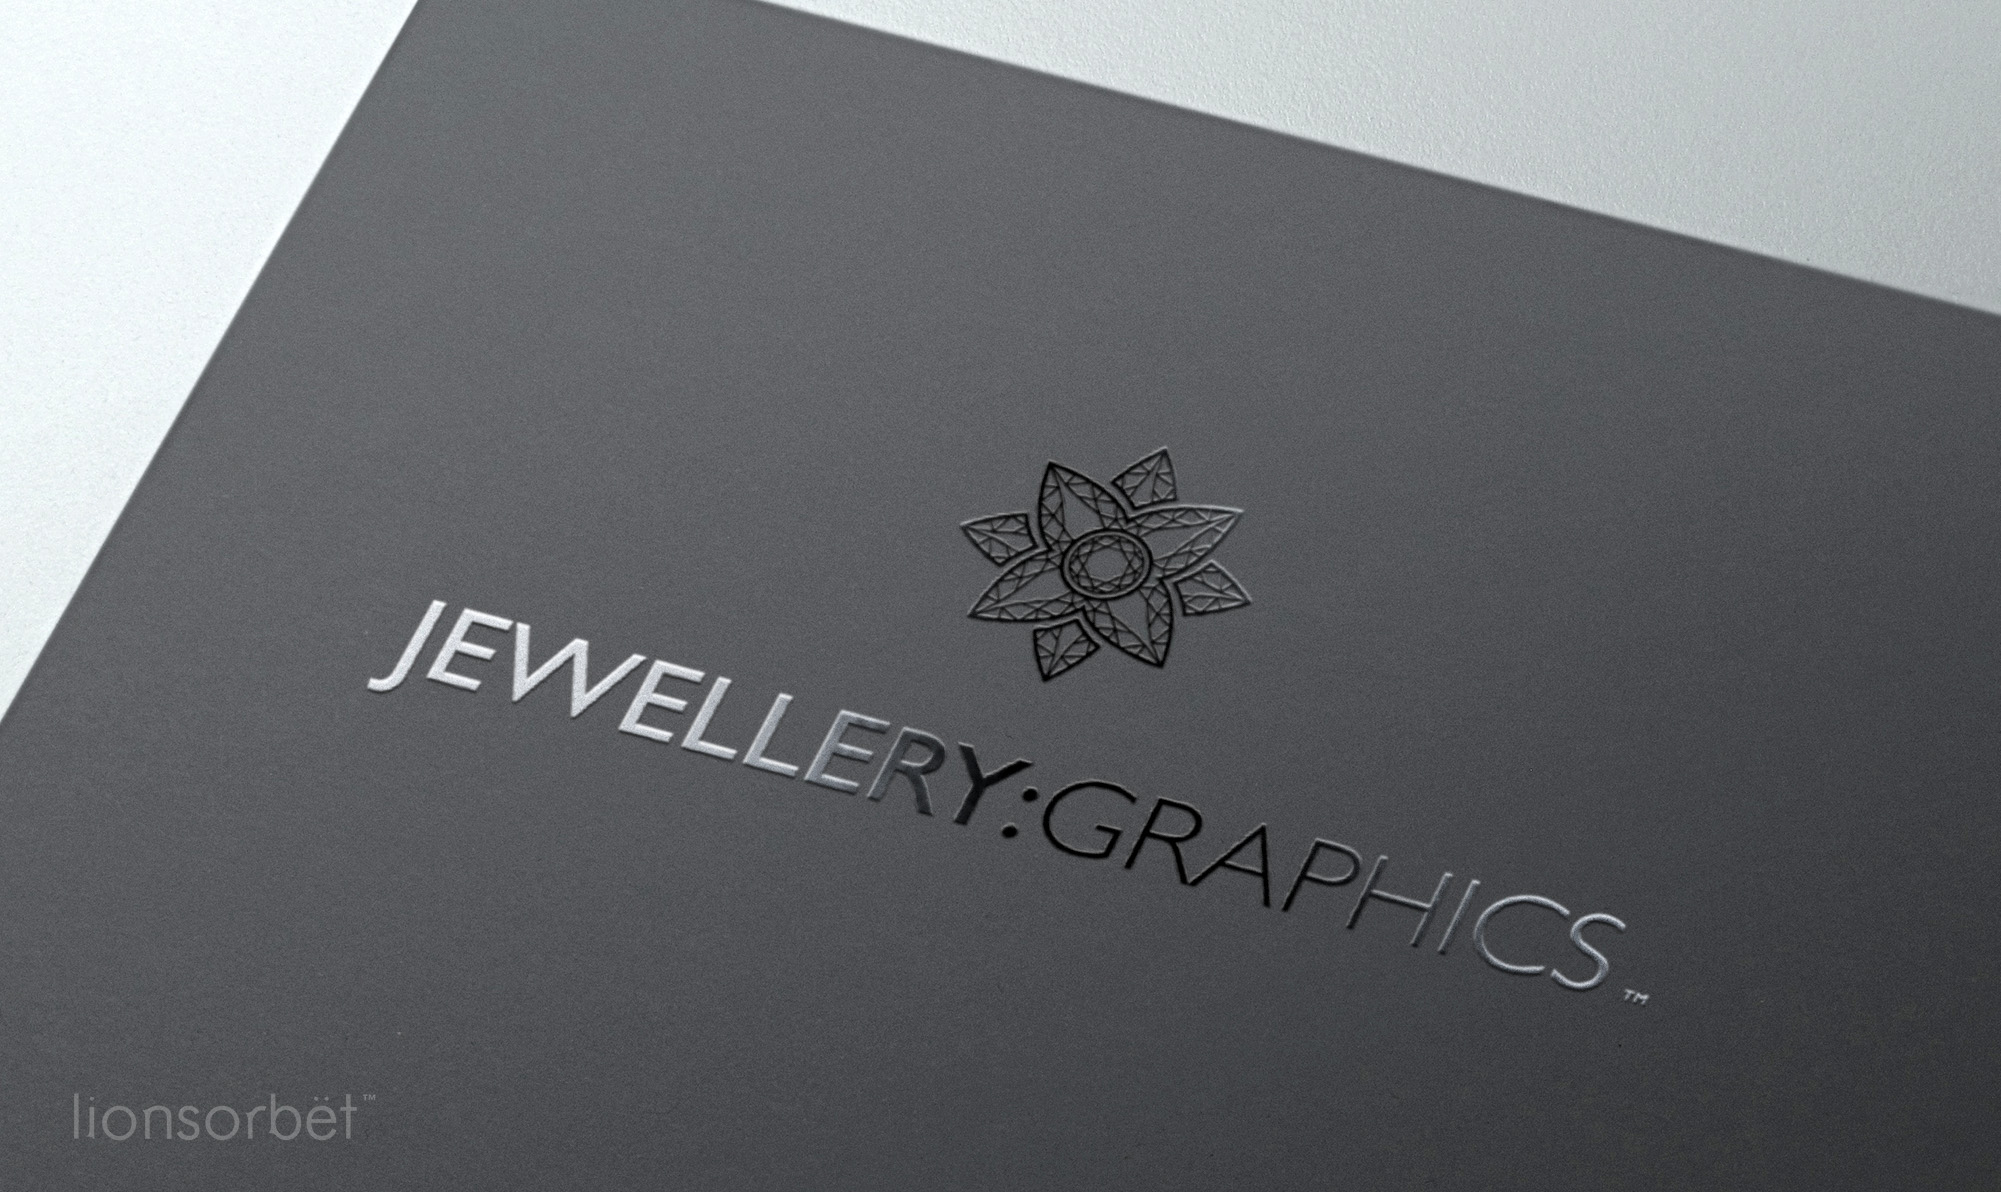 Jewellery:Graphics - Logo Design for new online jewellery image library